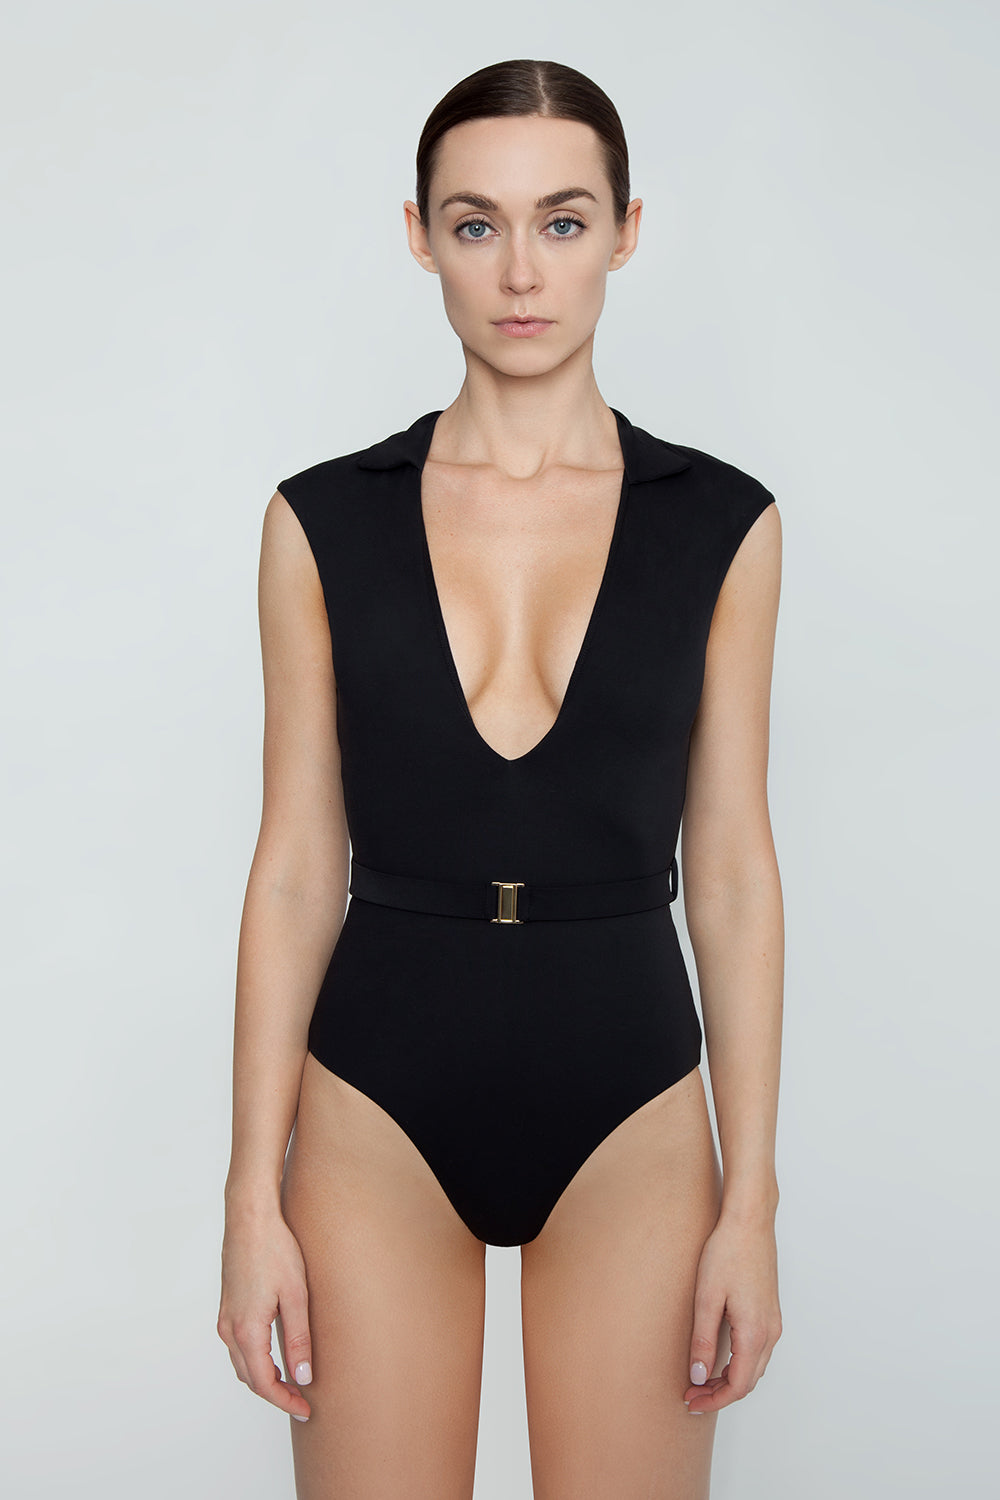 ca1b3ebe9fd4 ... AMAIO SWIM Franz Collared Plunging One Piece Swimsuit - Black -  undefined undefined